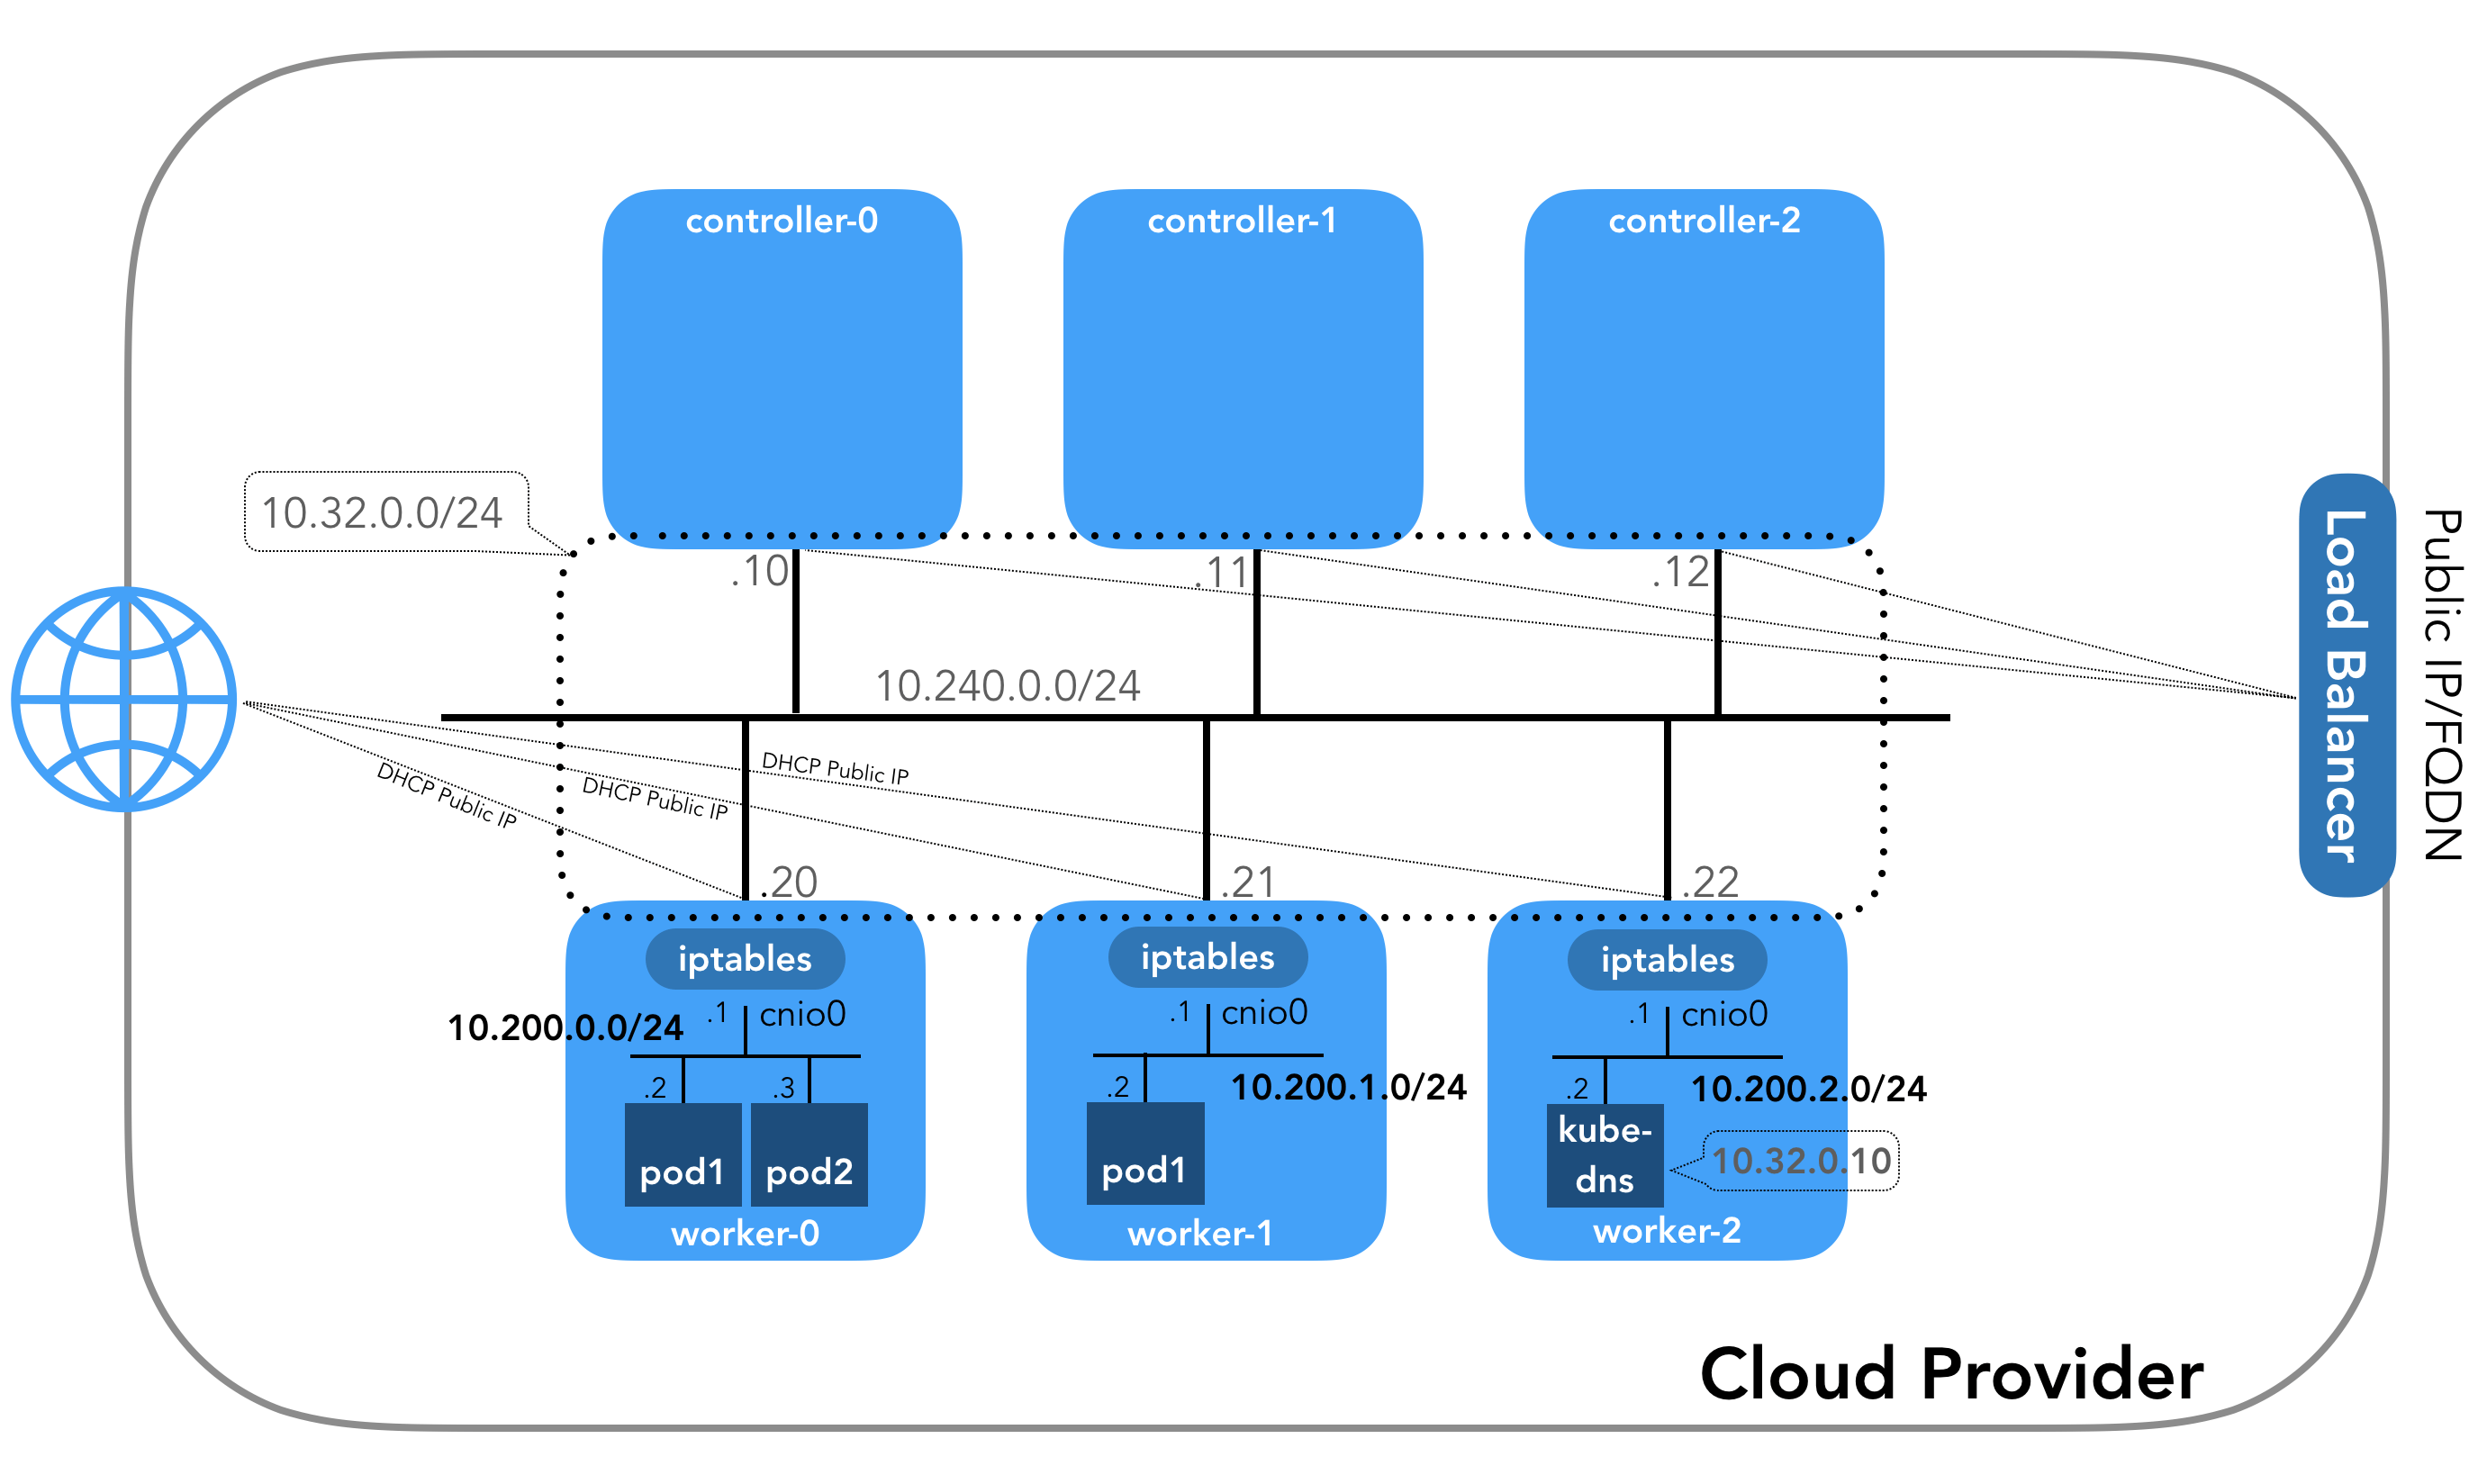 This image depicts kubernetes networking digram of controller-0, controller-1, controller-2 and worker-0, worker-1, and worker-2 connected through the same network.